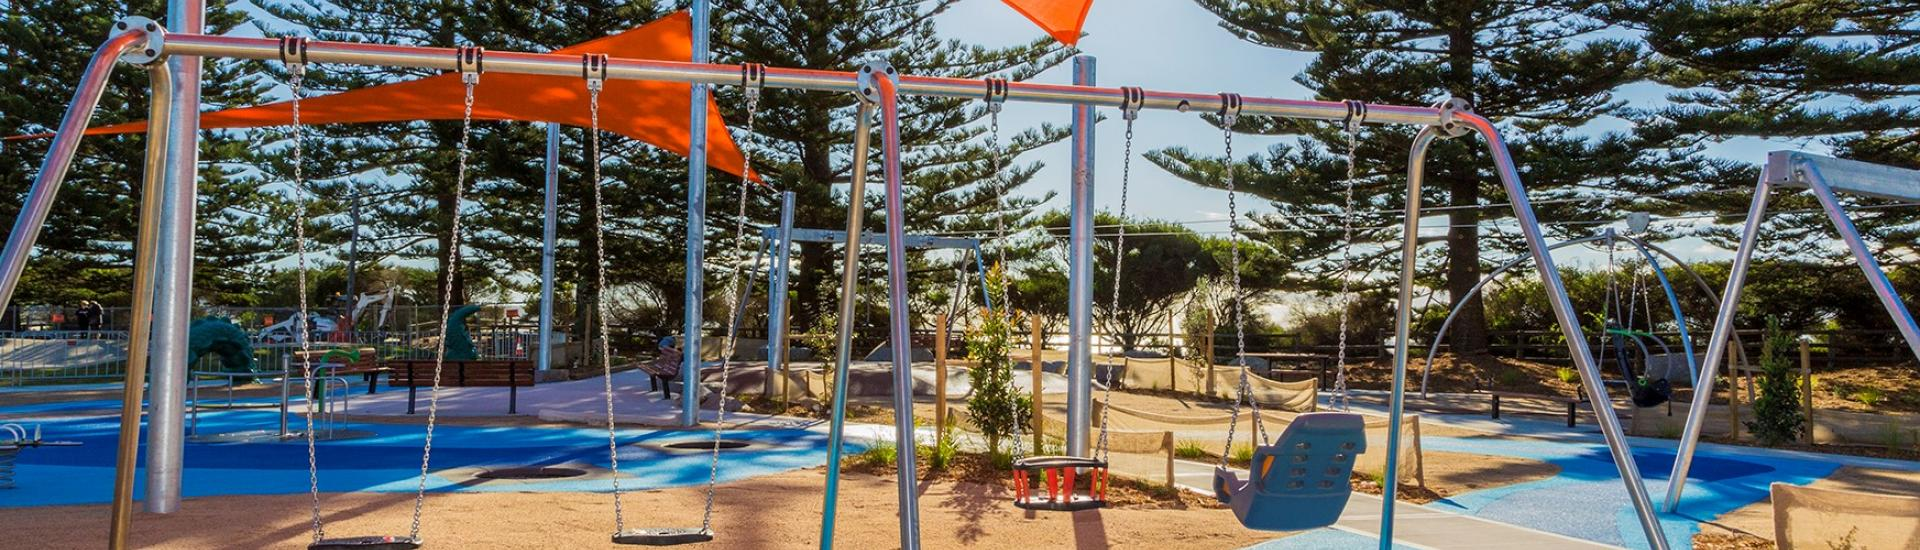 accessible playground swings